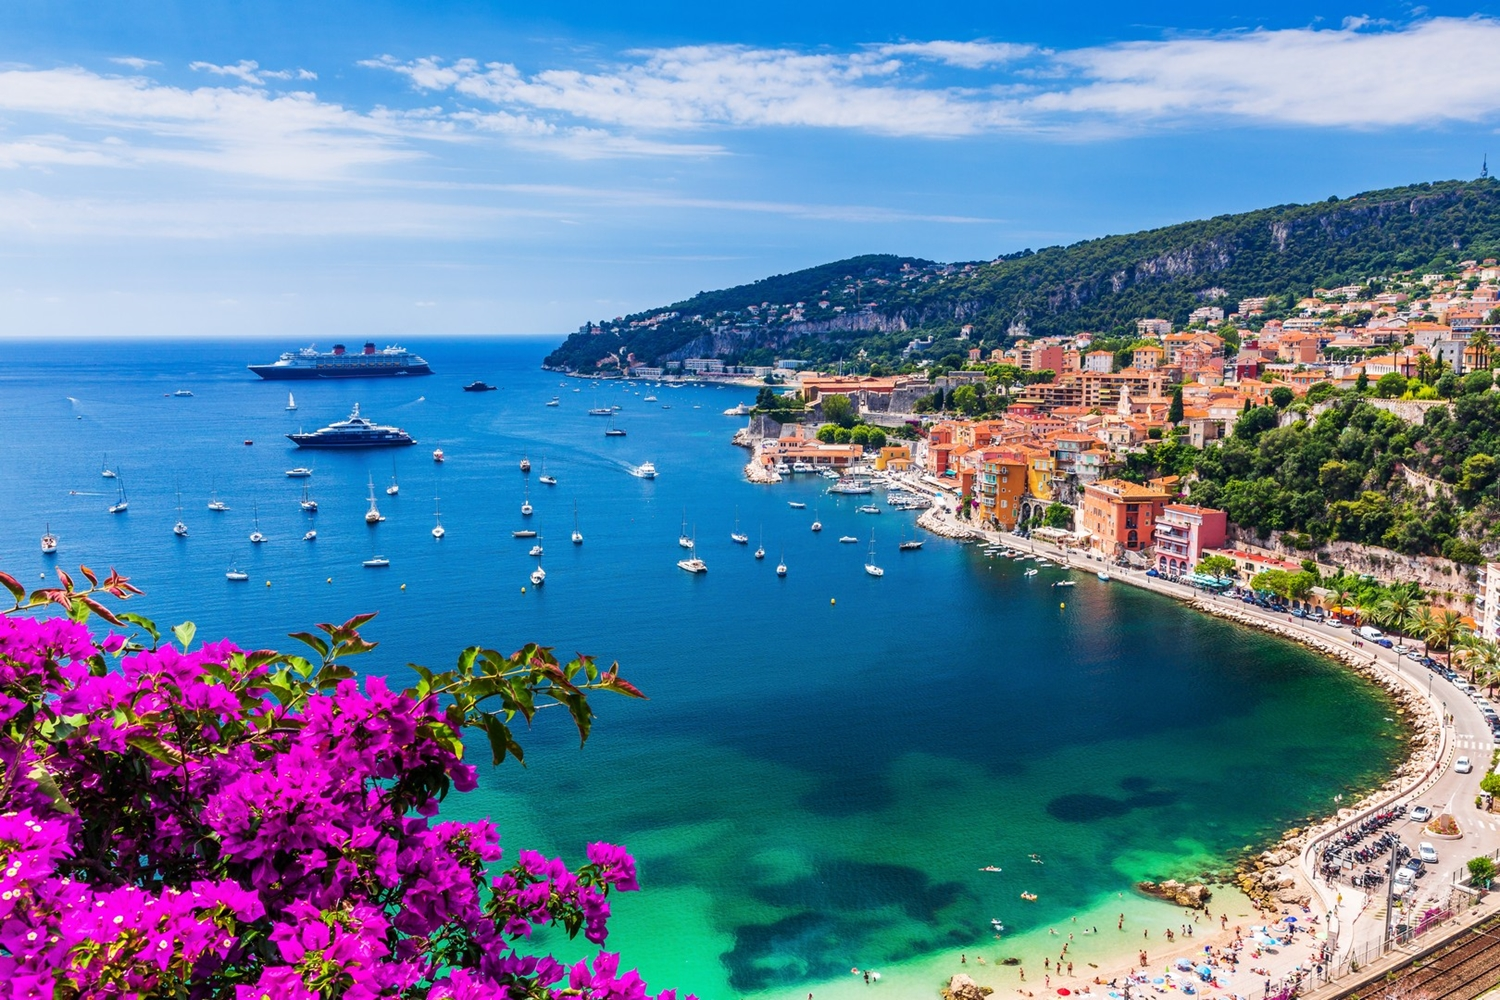 Villefranche - The Heart of the French Riviera